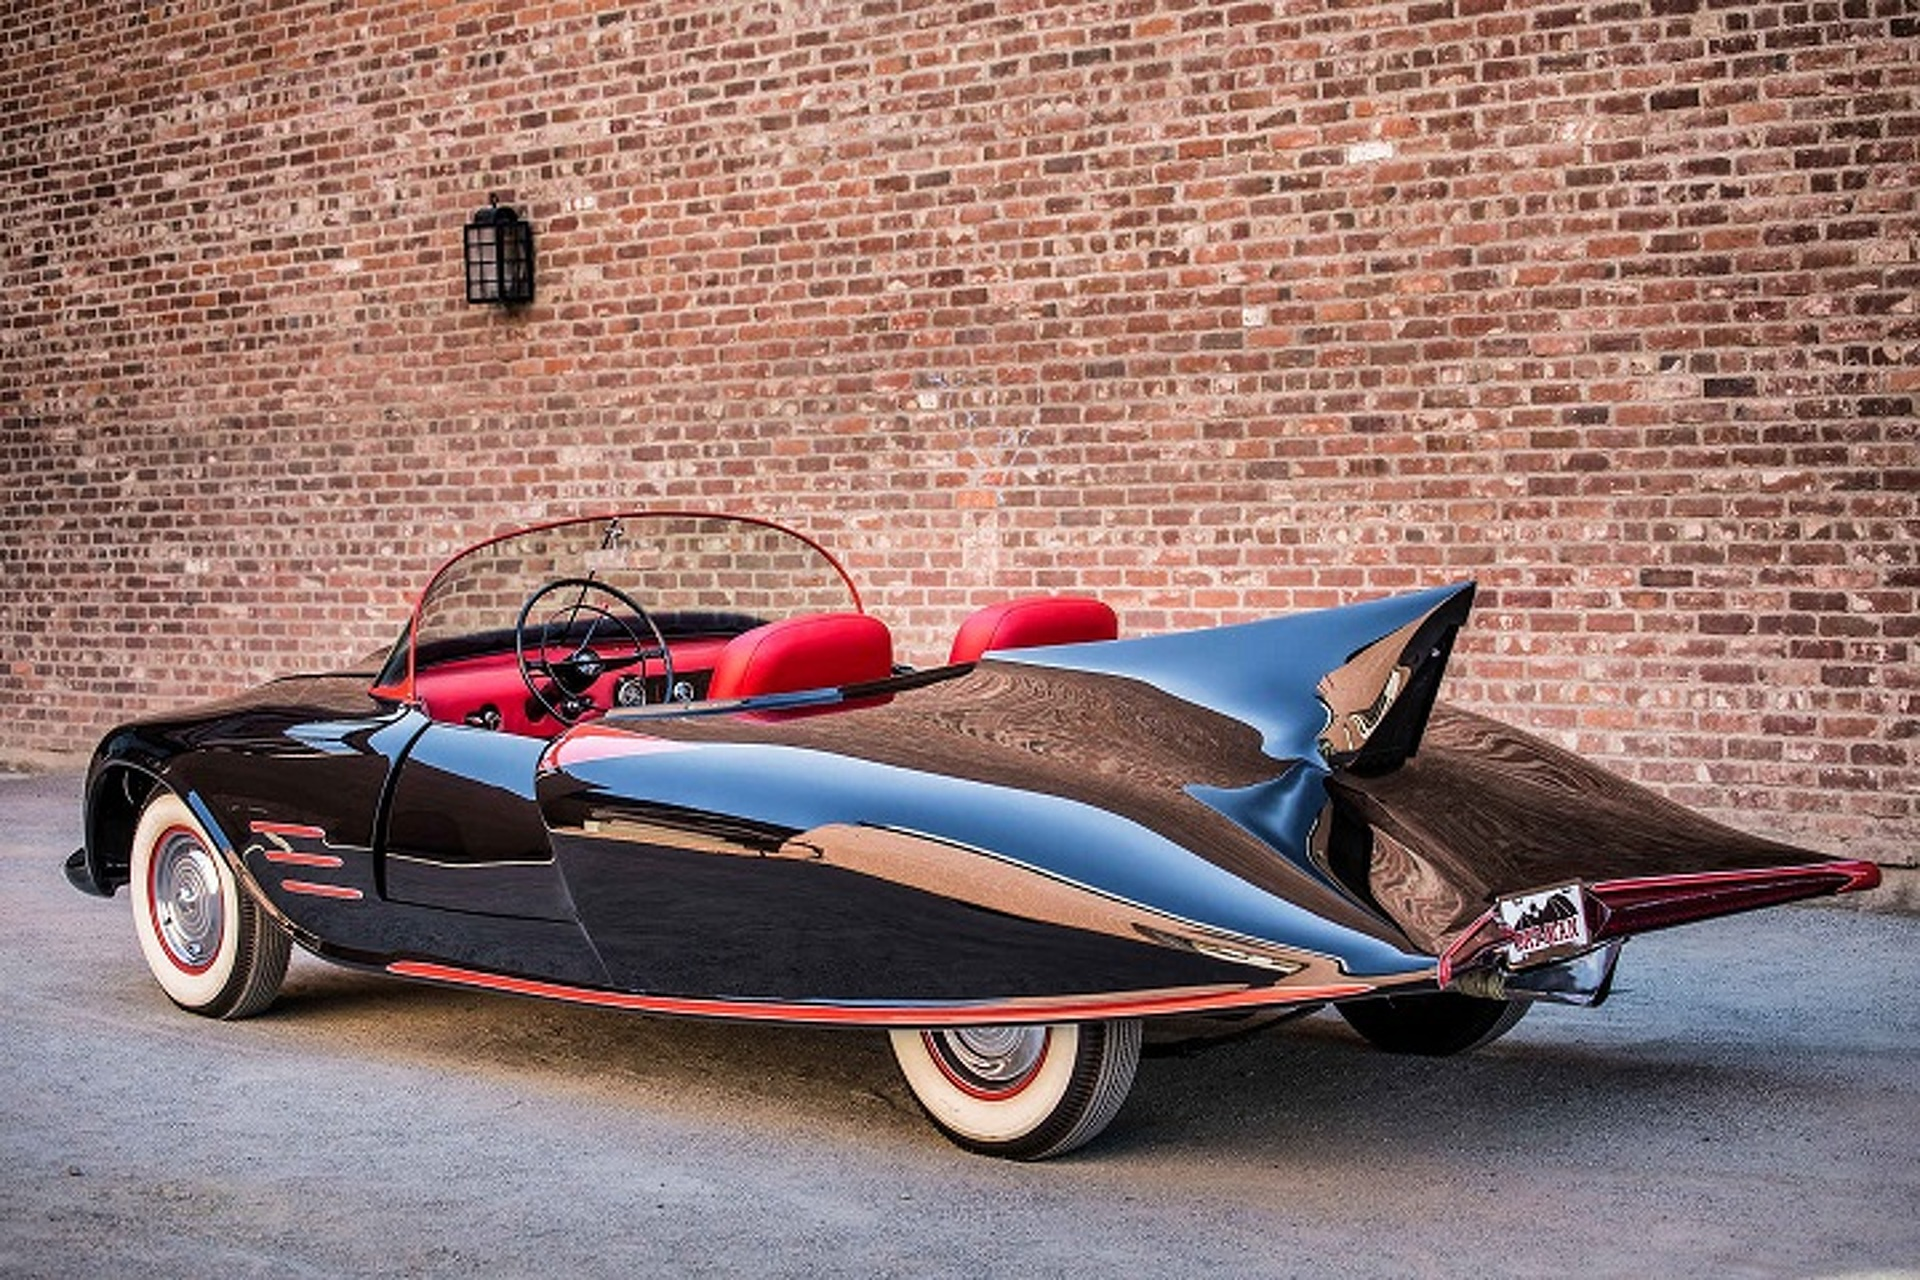 Original 1963 Batmobile Sells at Auction for a Steal